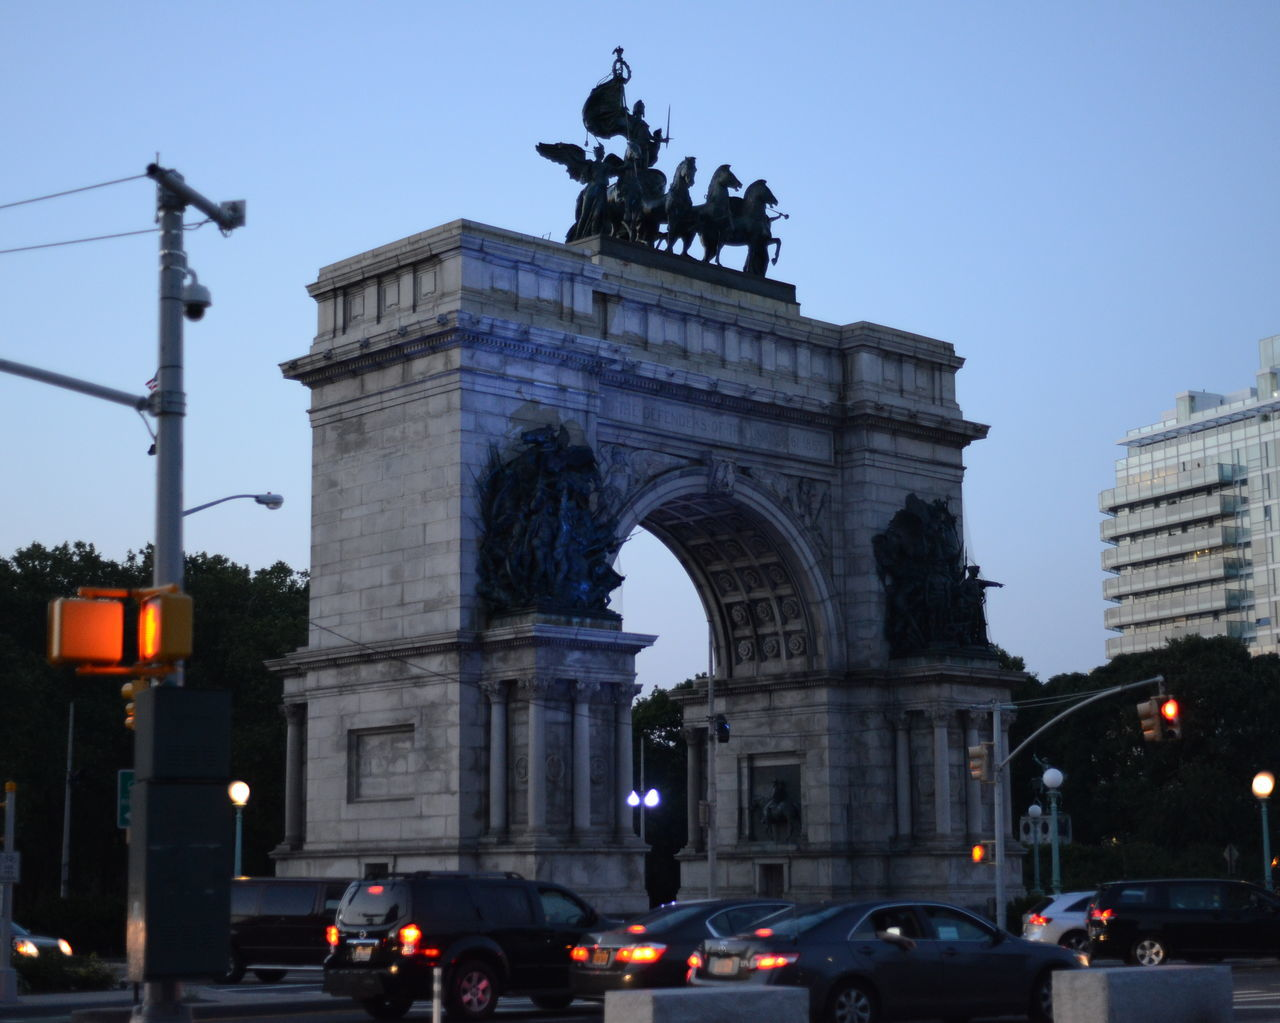 statue, architecture, built structure, human representation, car, sculpture, triumphal arch, city, arch, travel destinations, outdoors, building exterior, low angle view, travel, history, sky, illuminated, day, real people, clear sky